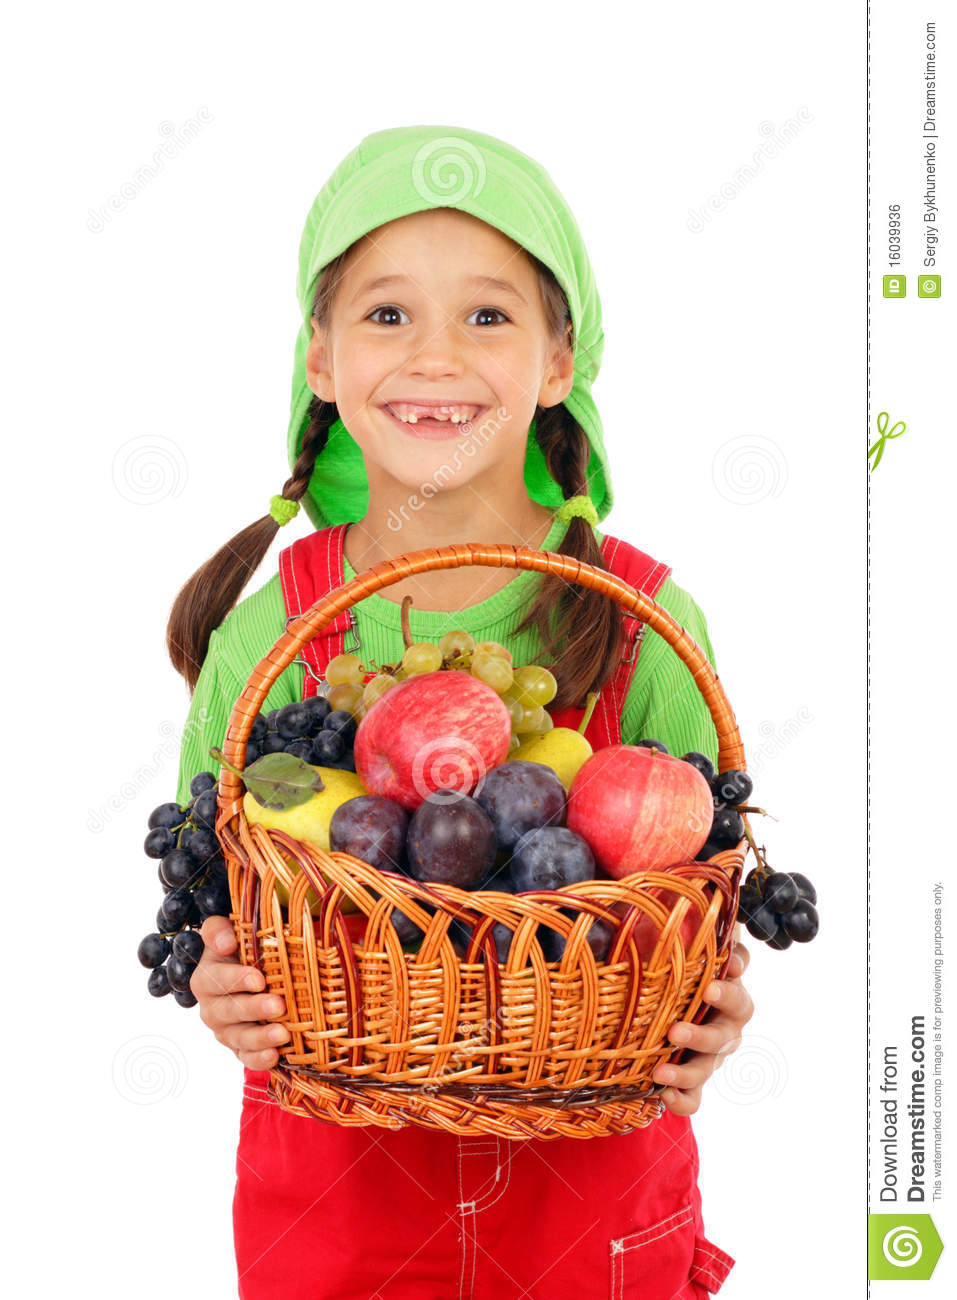 4 Day Diet Plans: Little Girl With Basket Of Fruits Stock Photo